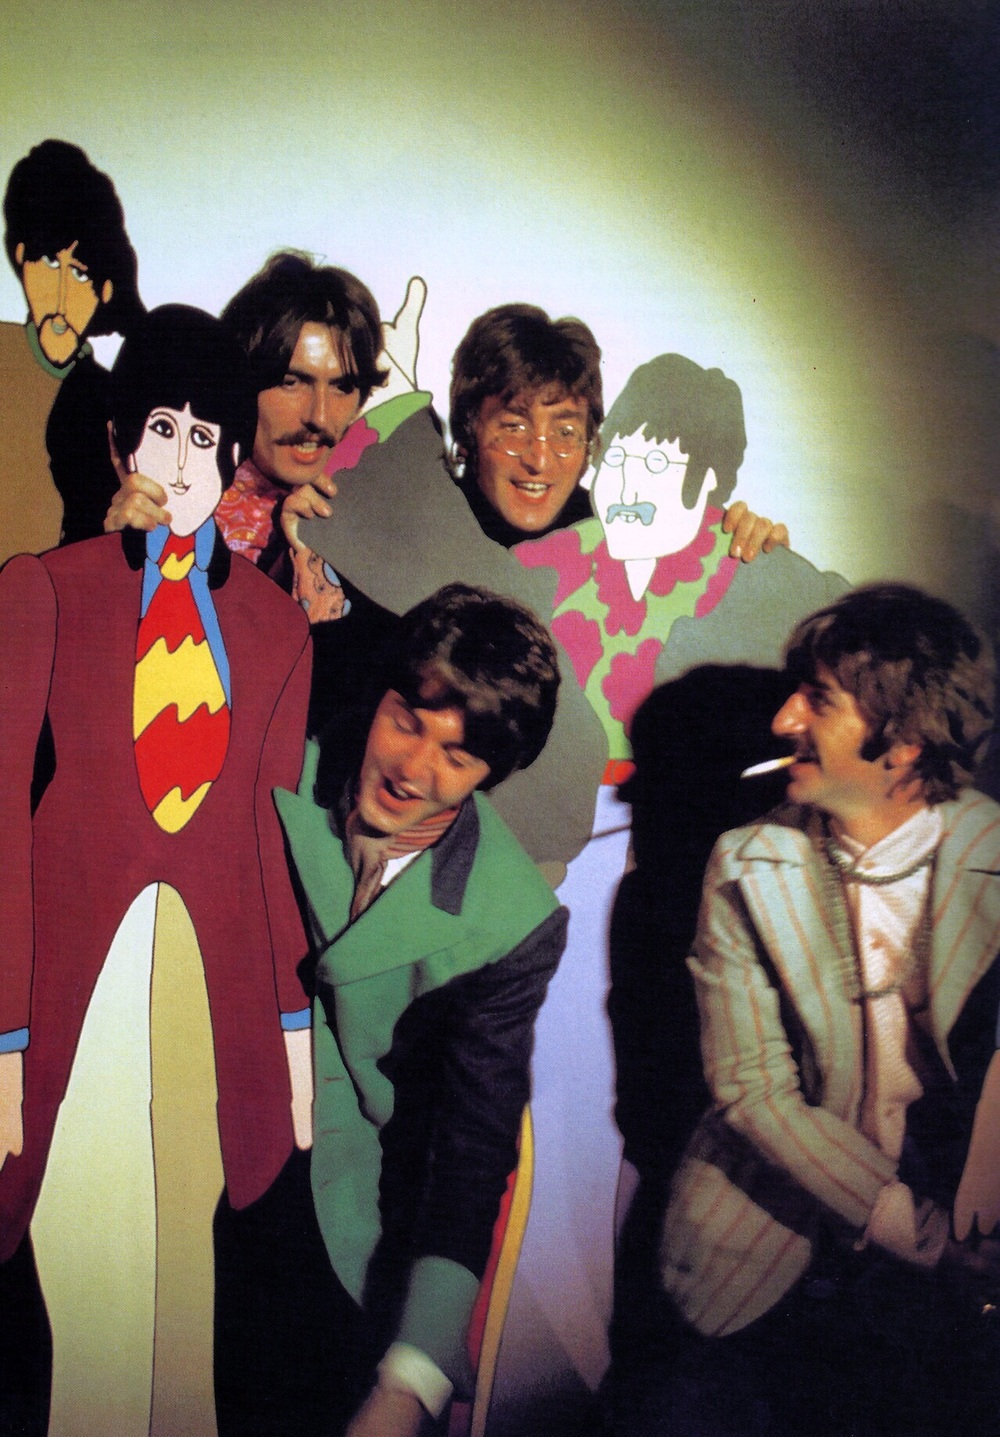 The Beatles promoting Yellow Submarine with their cardboard cutouts, 1968.